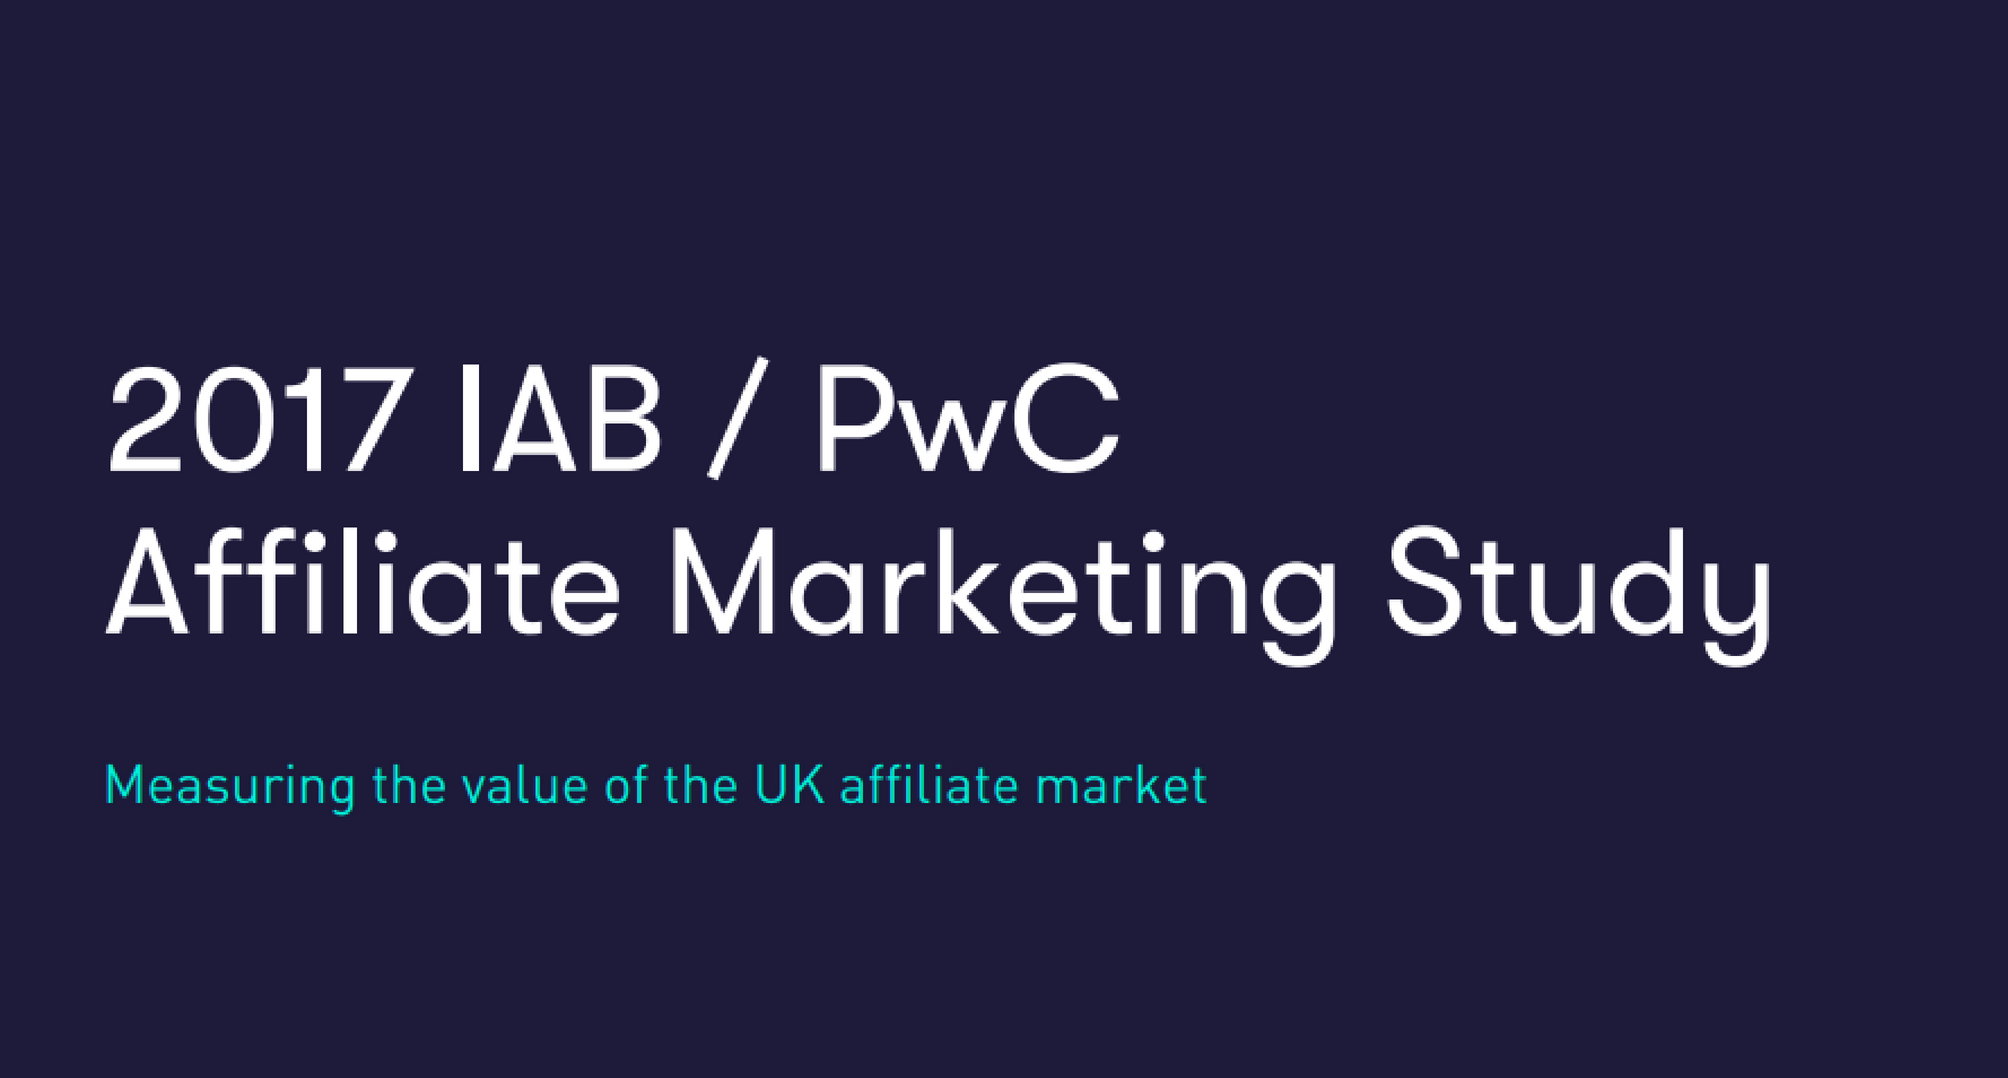 IAB UK e PwC pubblicano uno studio sull'Affiliate Marketing